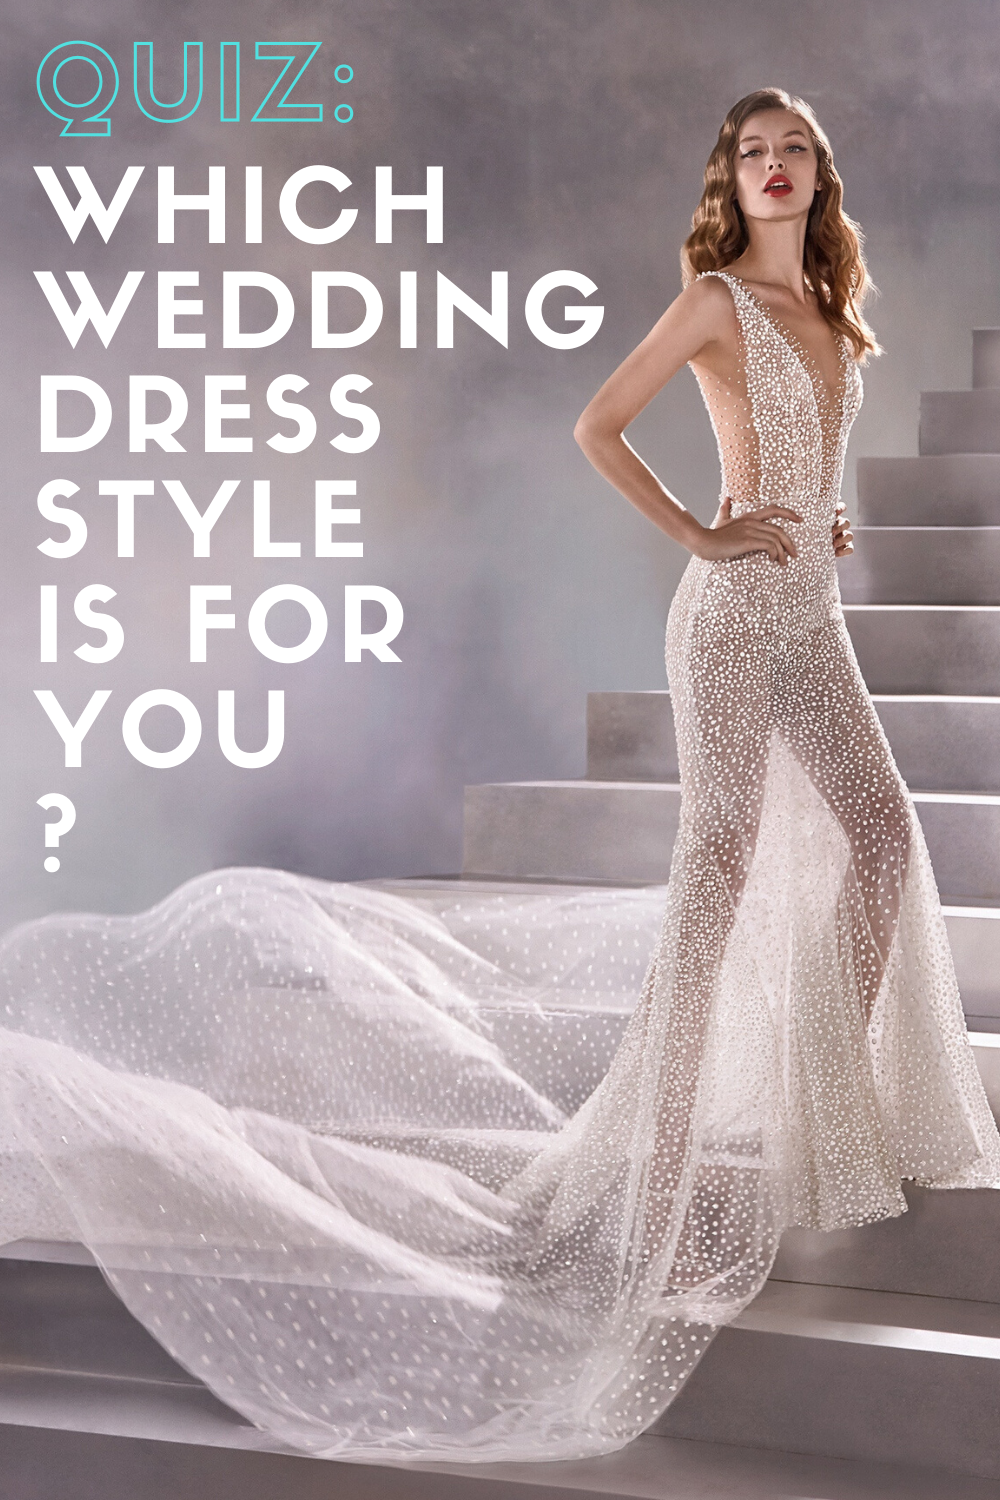 Wedding Dress Quiz What Dress Style Should You Wear On Your Wedding Day In 2020 Wedding Dress Quiz Wedding Dress Styles Weddind Dress